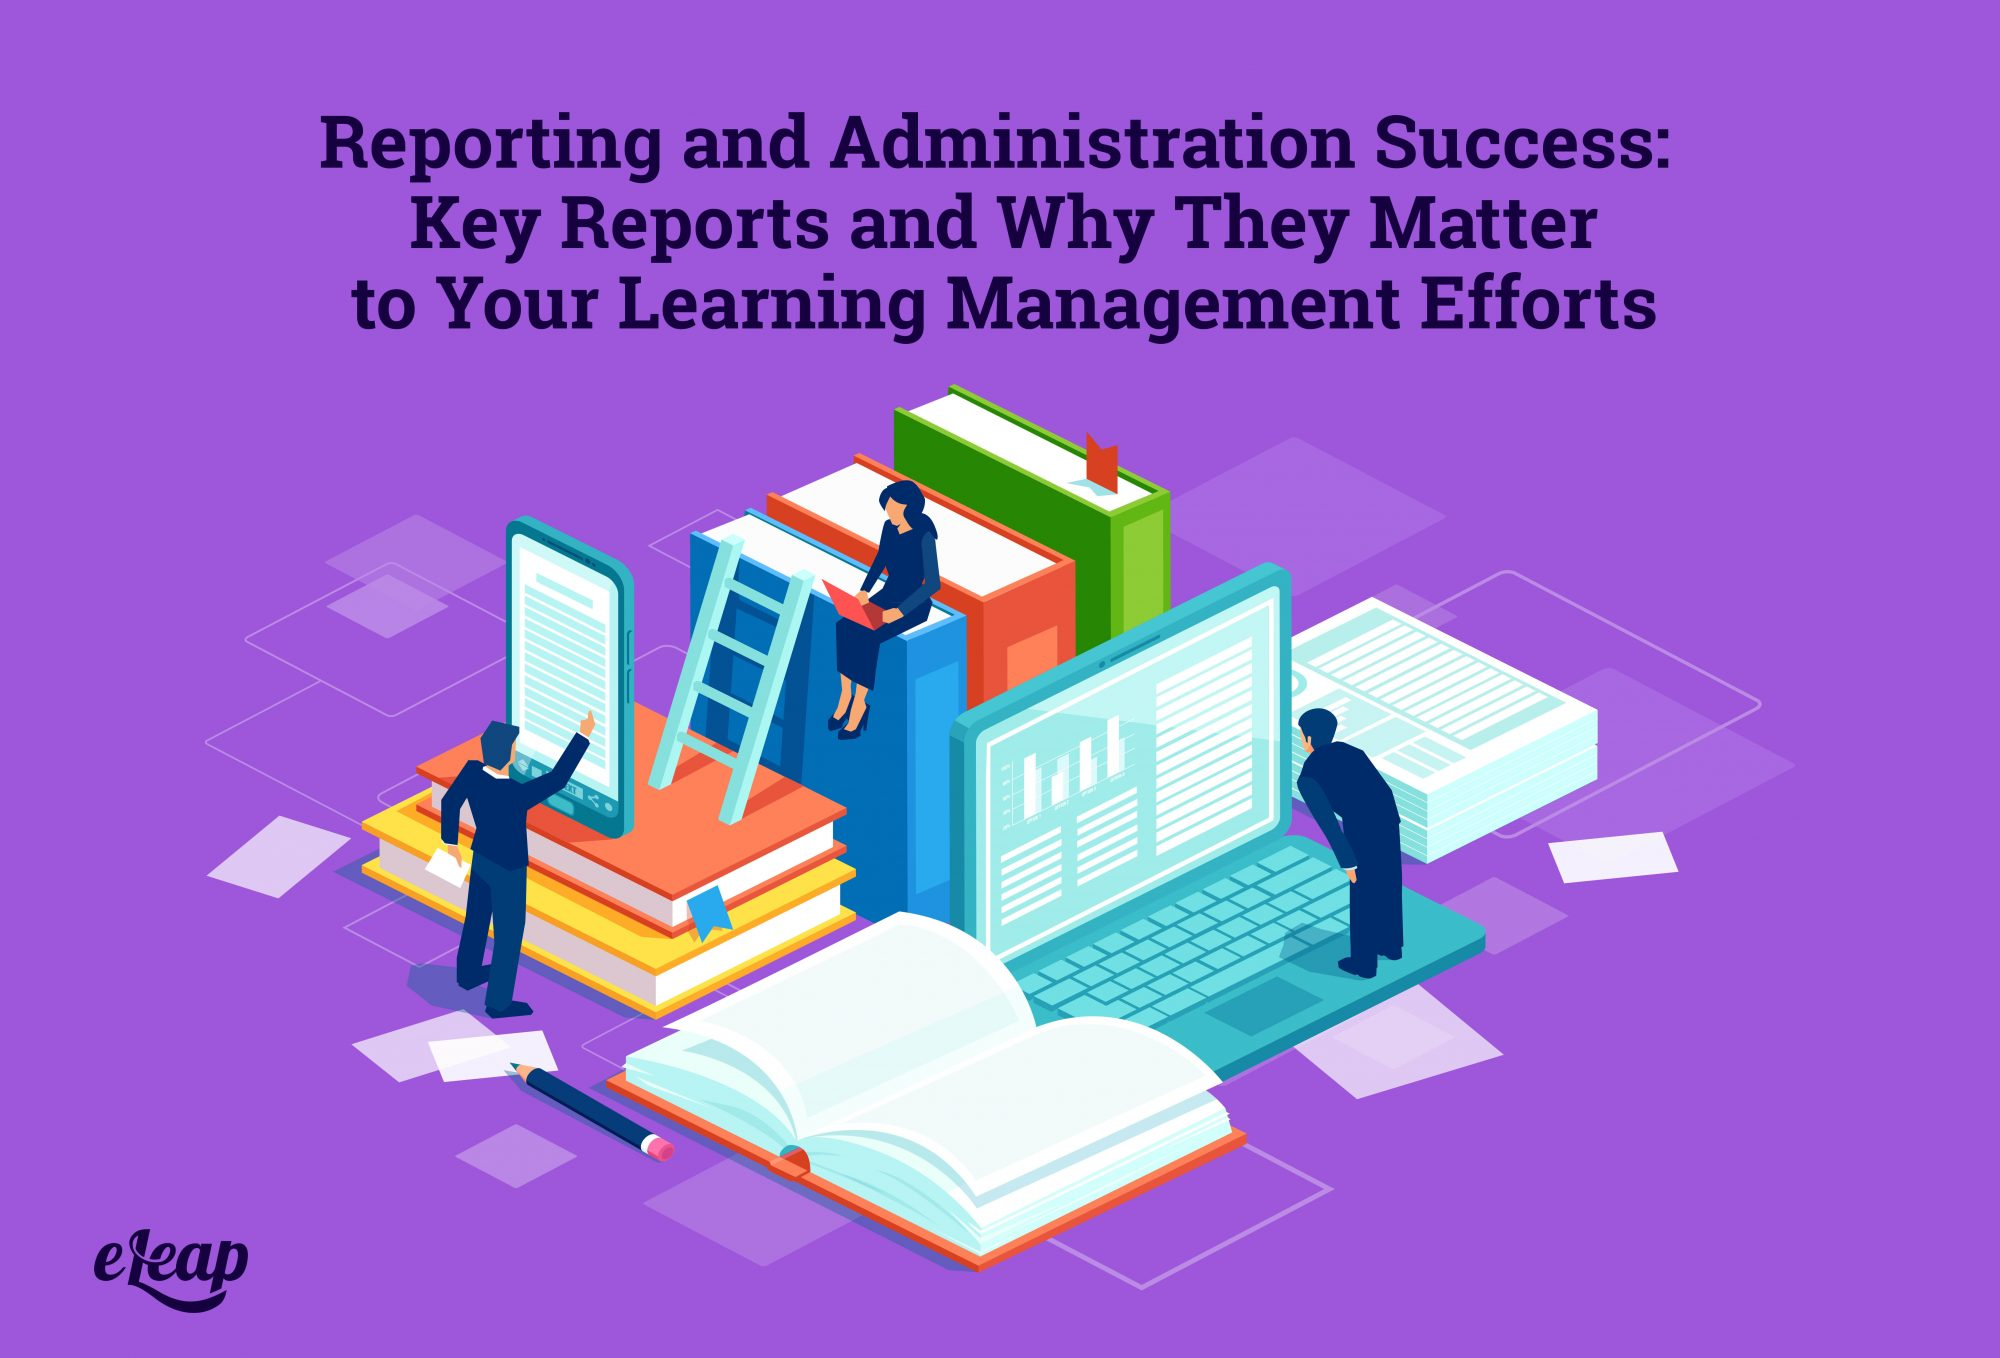 Reporting and Administration Success: Key Reports and Why They Matter to Your Learning Management Efforts